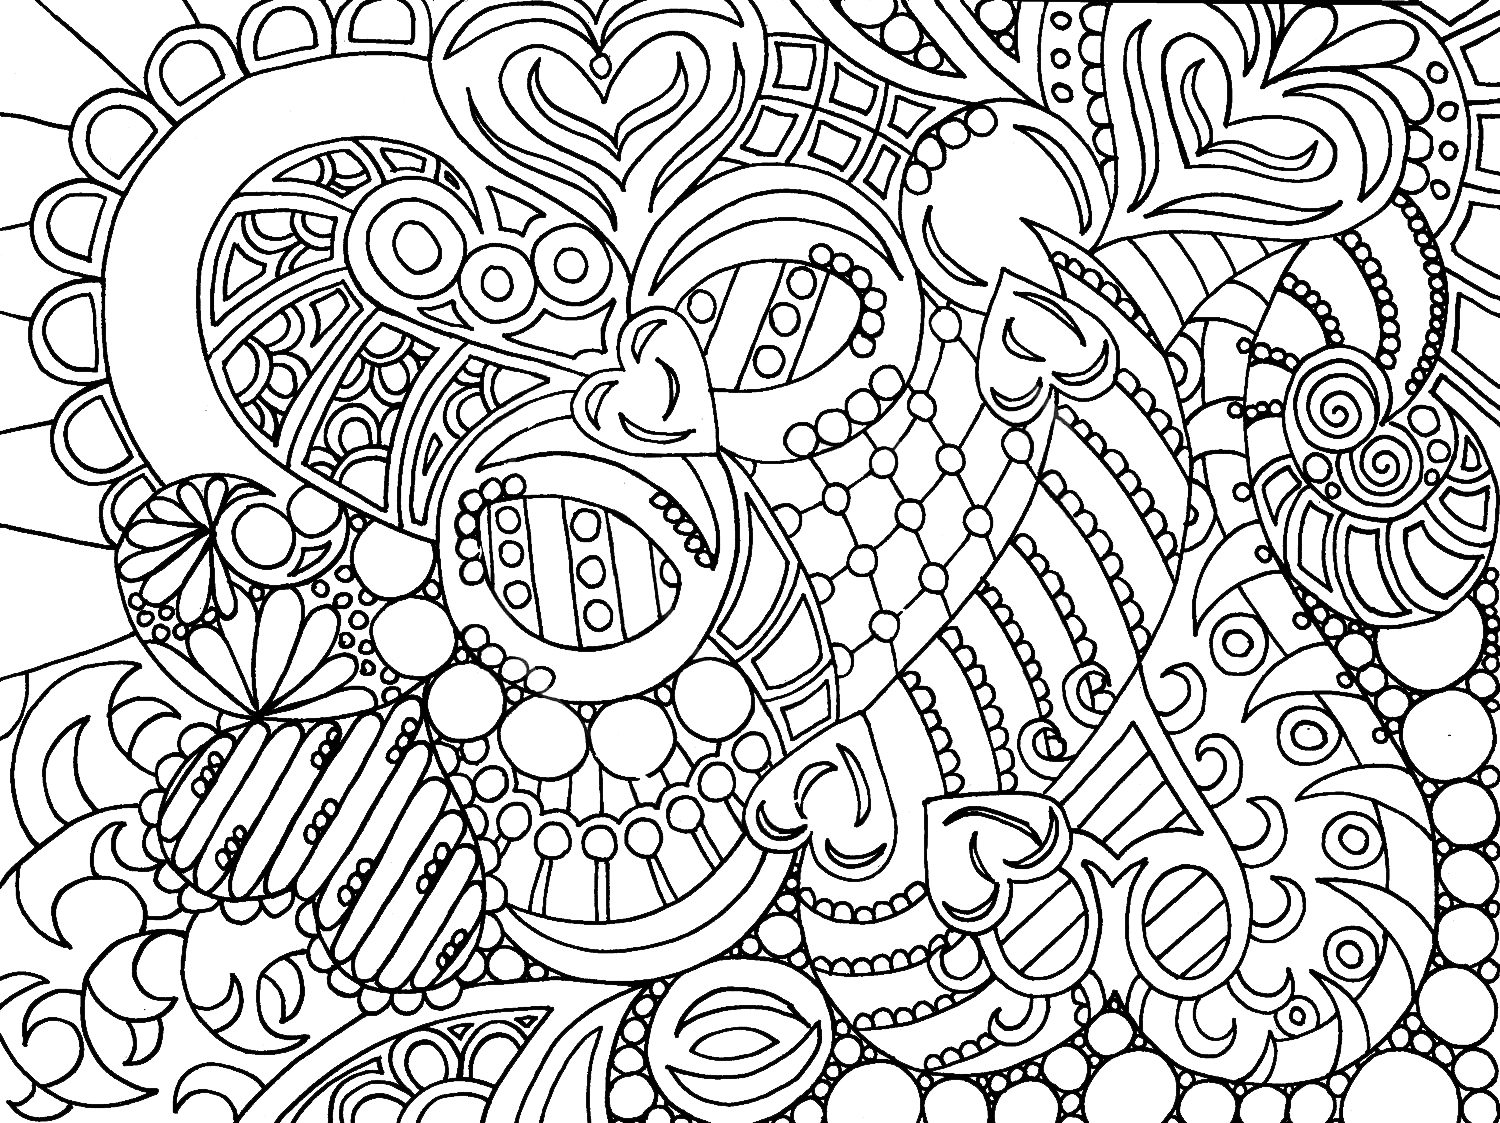 coloring pages for teens online | coloring pages to print for teenagers | Only Coloring ...